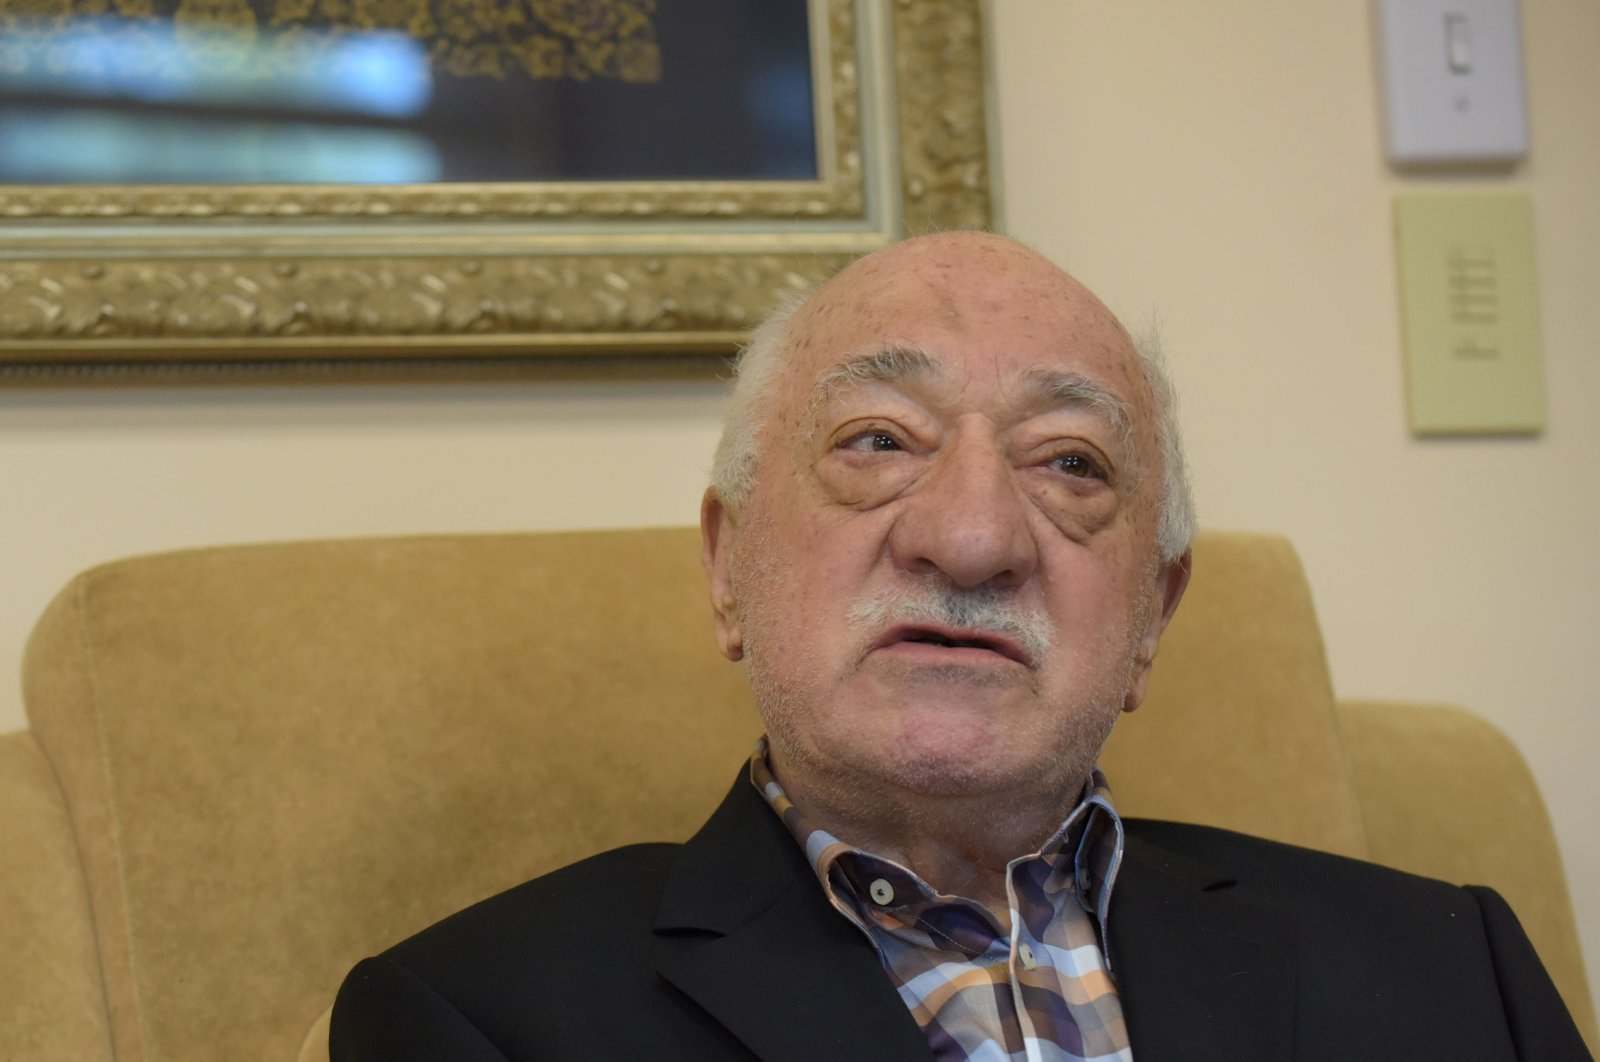 FETÖ leader Fethullah Gülen speaks to members of the media from his home at the Golden Generation Worship and Retreat Center in Saylorsburg, Pennsylvania, U.S., Sept. 22, 2016. (DPA Photo)